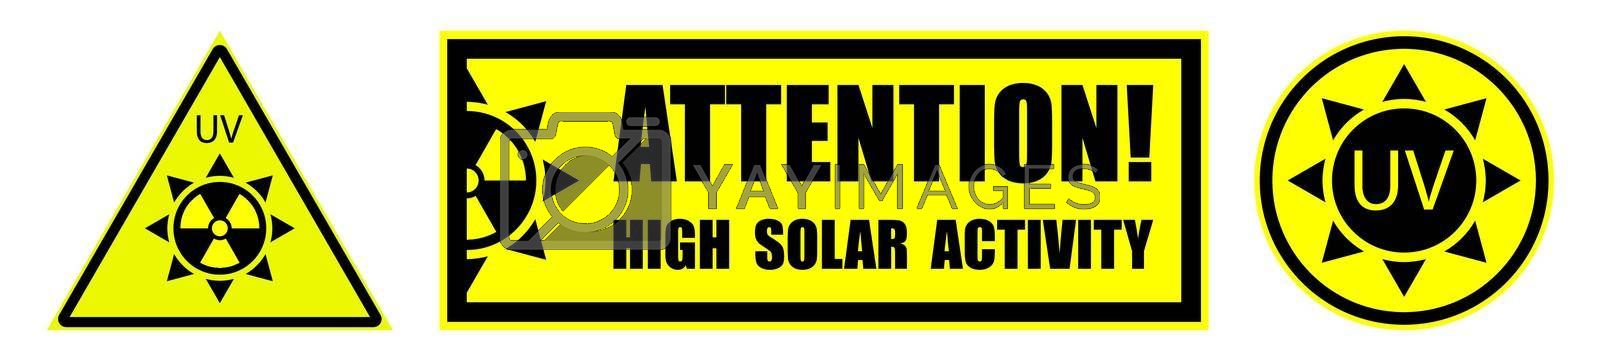 set of danger signs on a yellow background, high solar activity. Increased ultraviolet radiation. Protection against sunburn. Isolated vector on white background